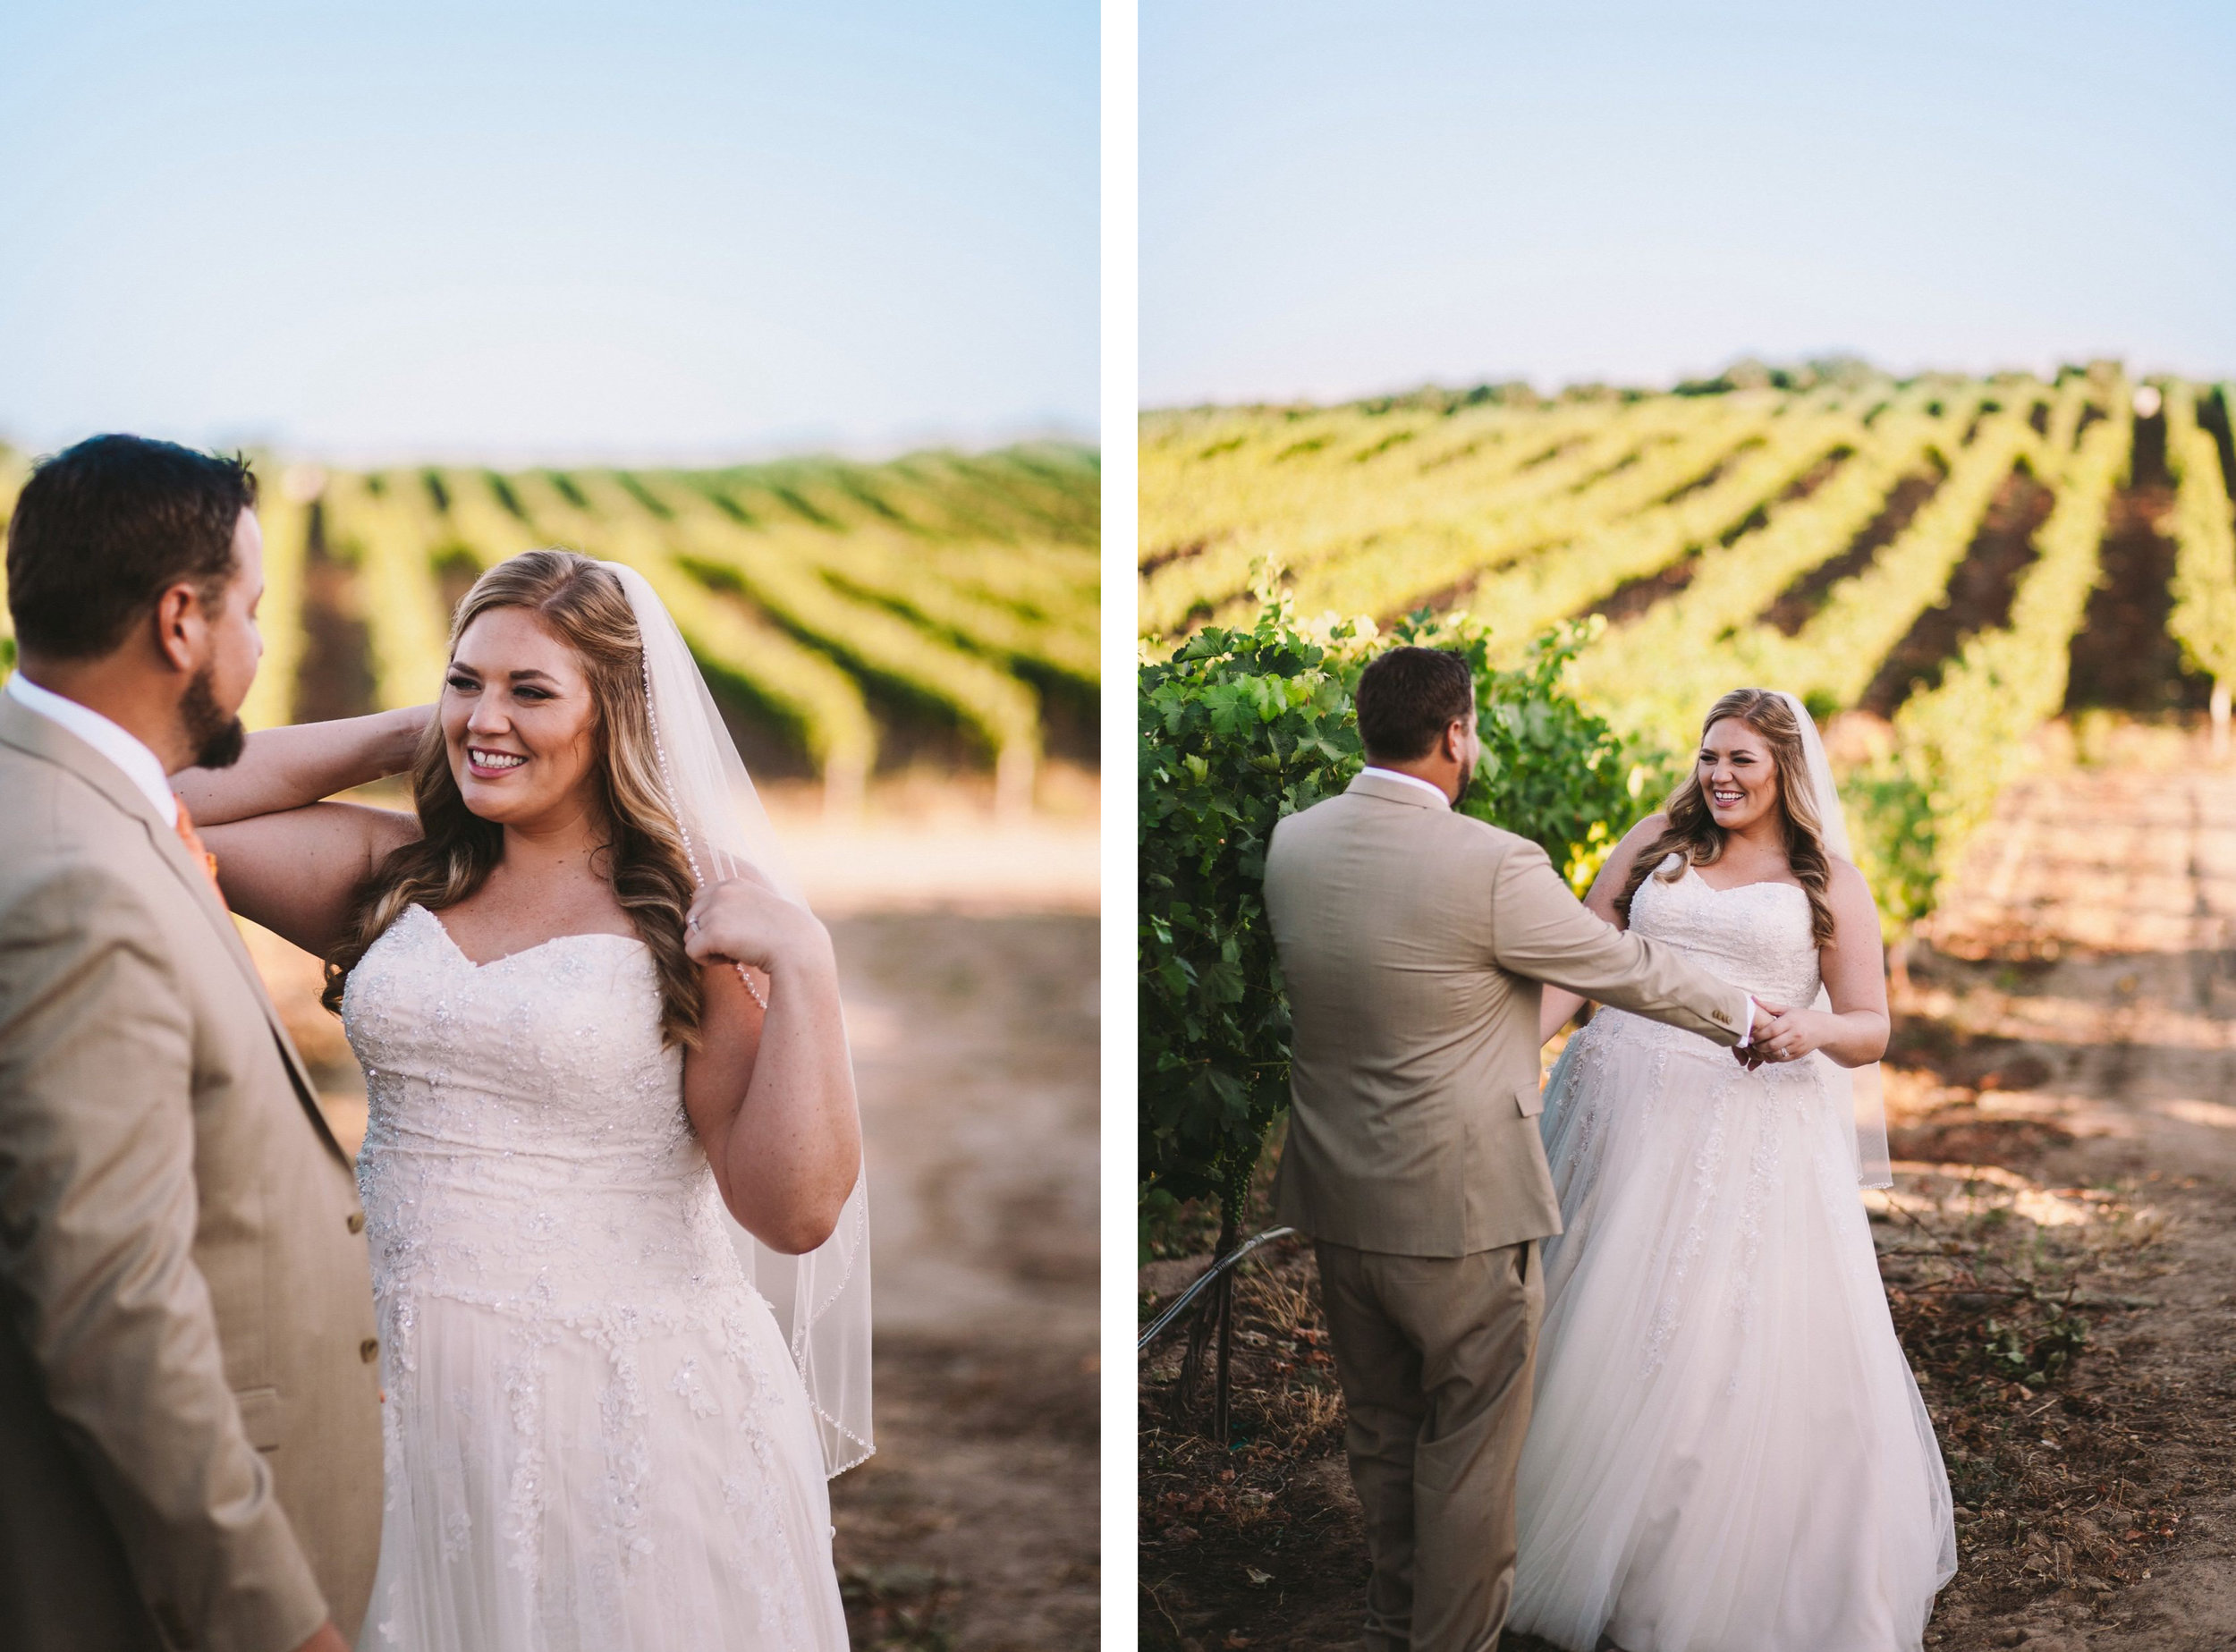 Toca Madera Winery Wedding Photography 116.jpg